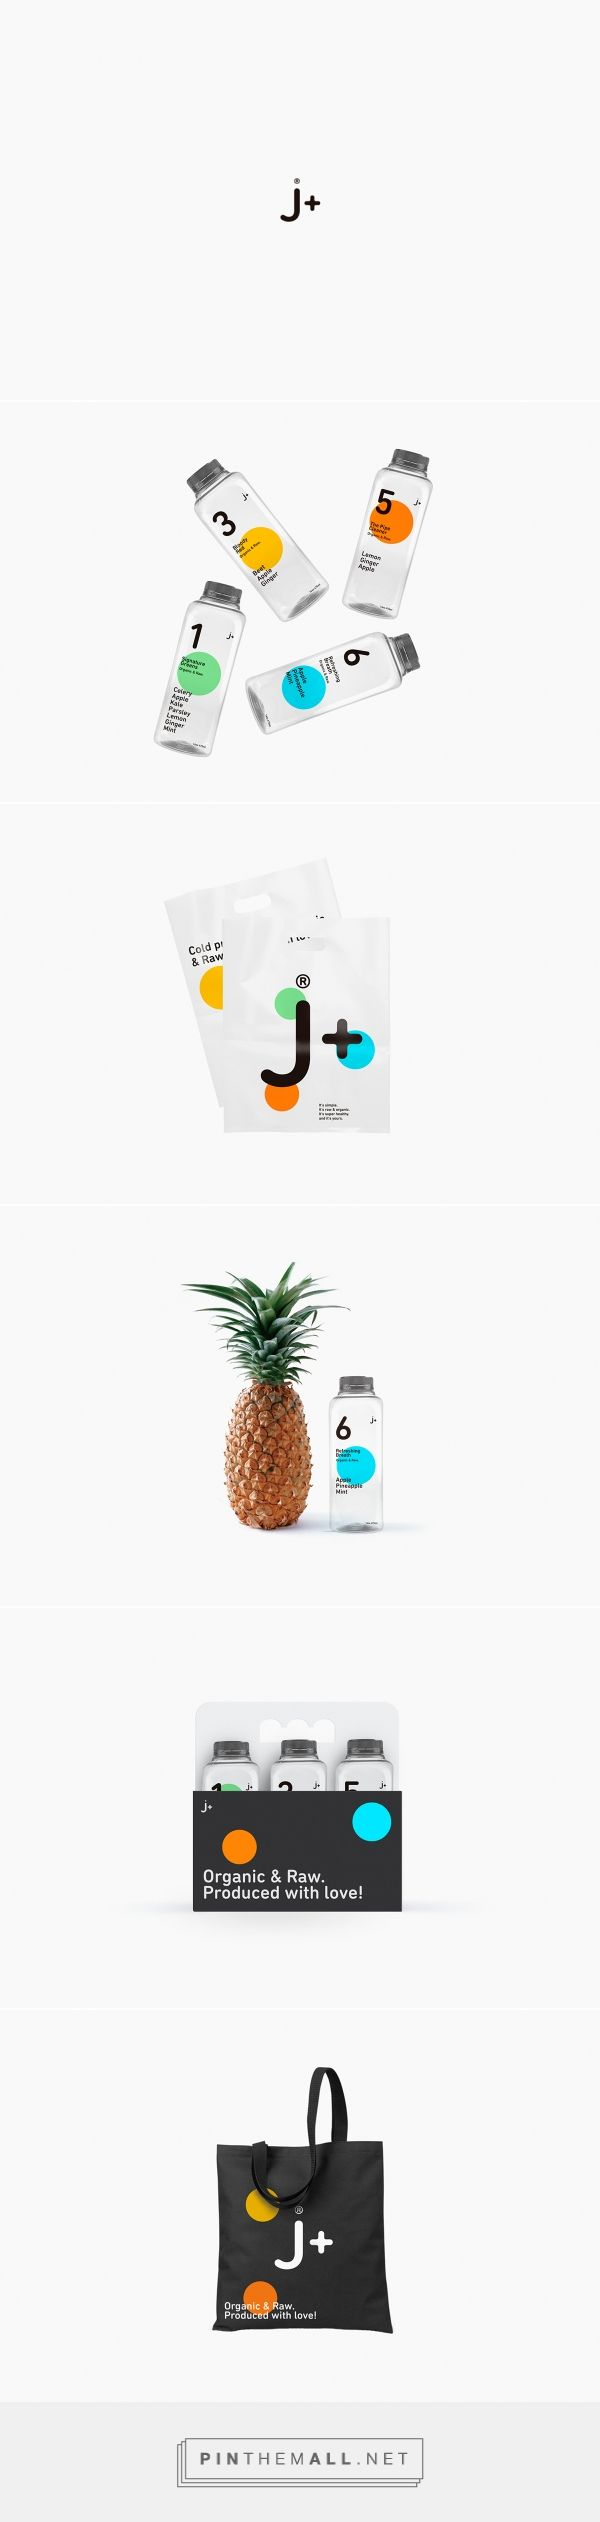 J+ Juice Branding and Packaging by Empatia | Fivestar Branding Agency – Design and Branding Agency & Curated Inspiration Gallery